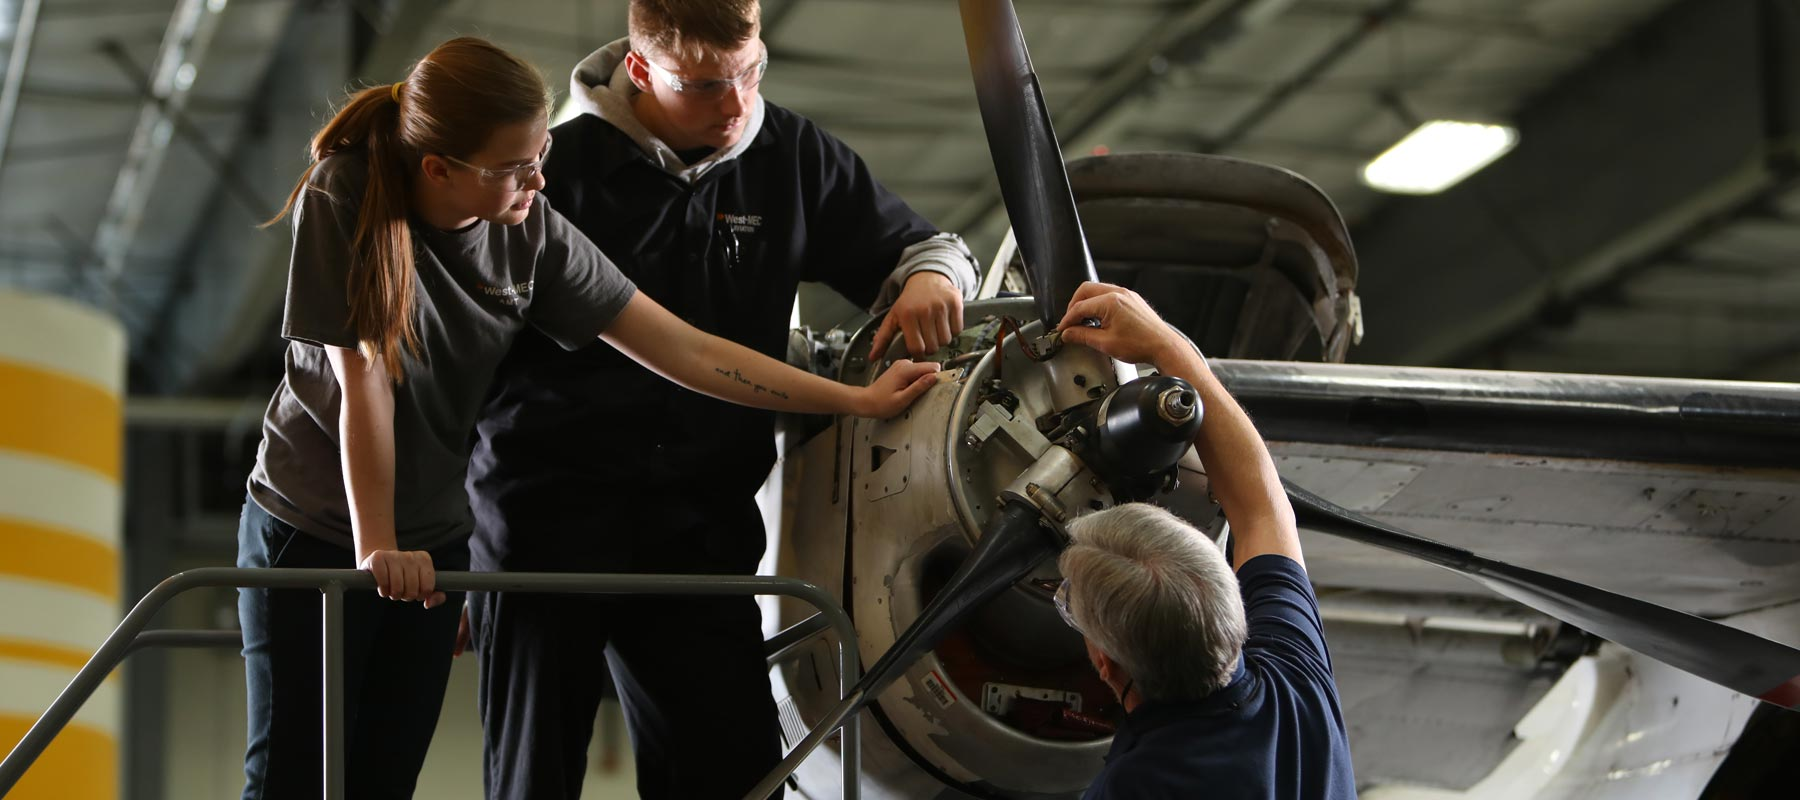 West-MEC Career Training program photo of students & instructor working on an airplane